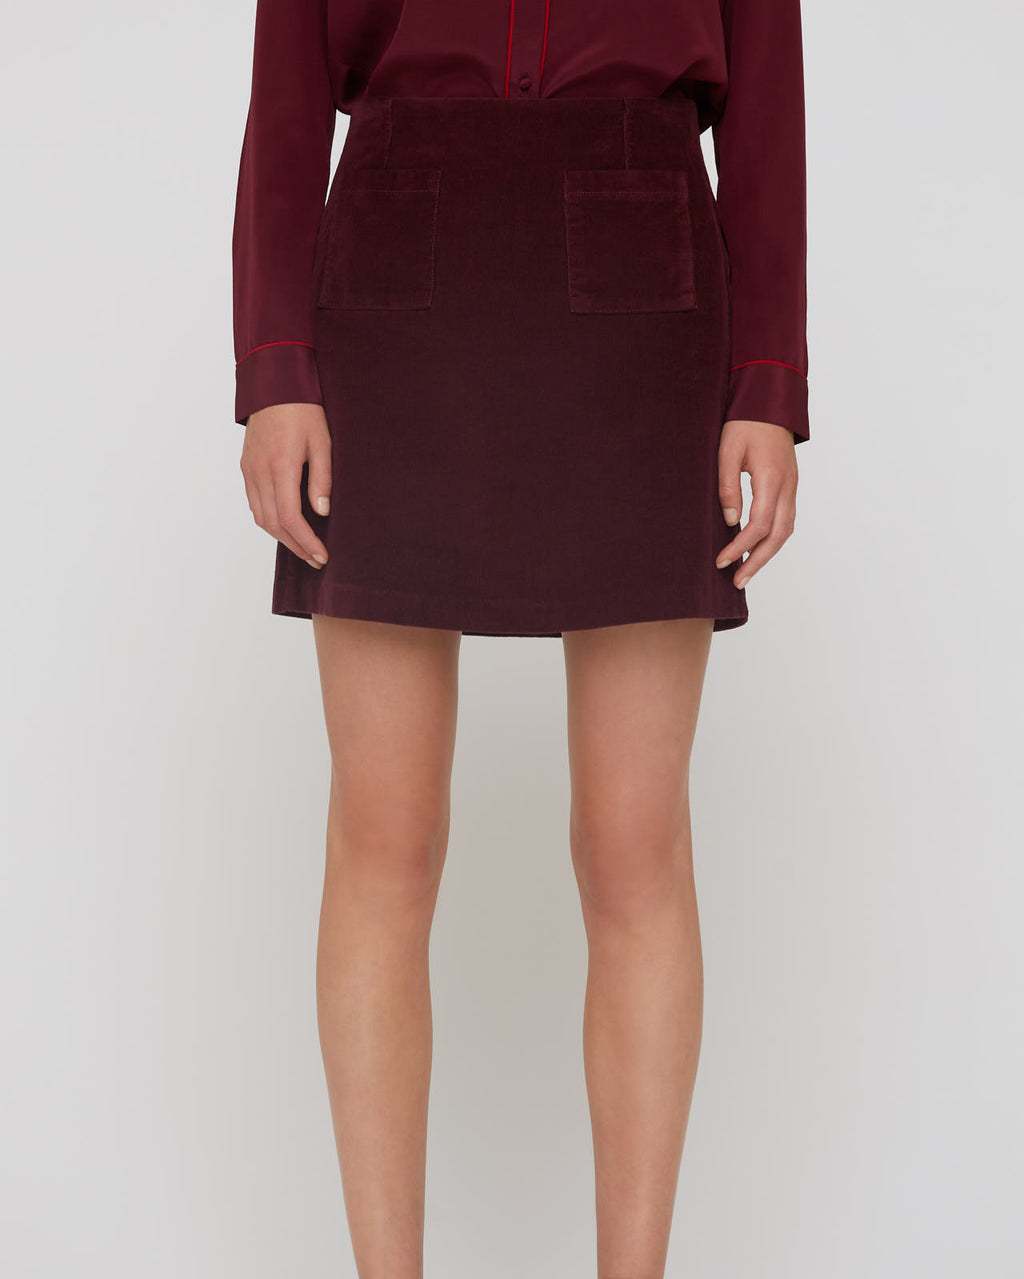 The Lucy Skirt Mulberry Corduroy